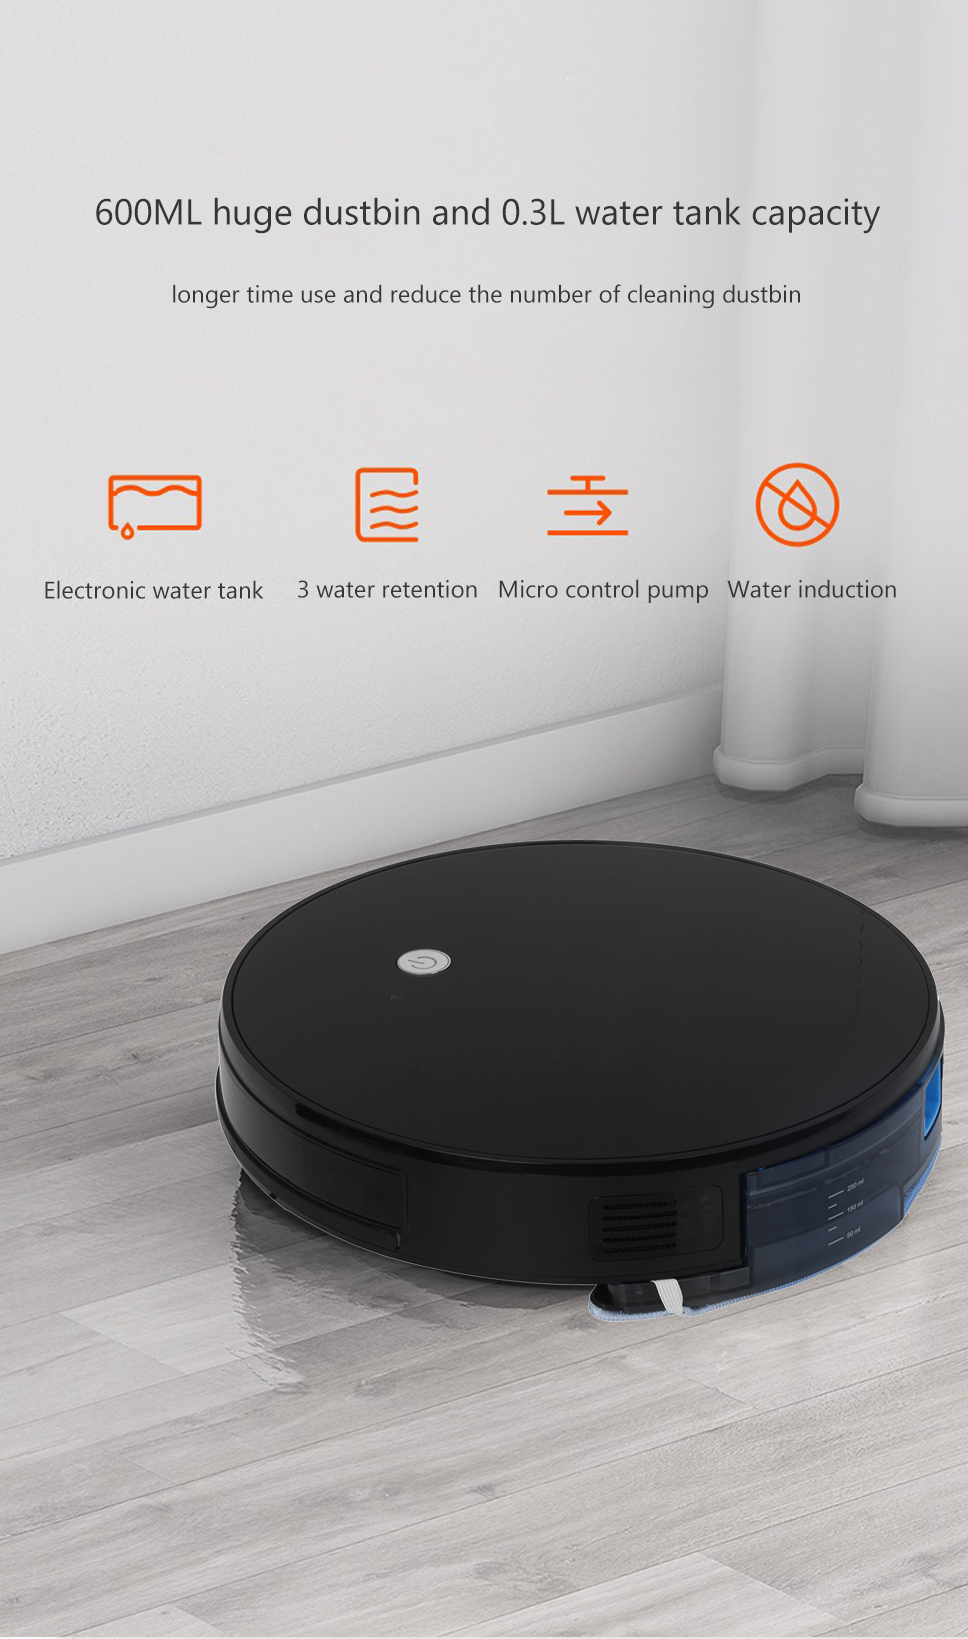 Hff1a93423f7f43d3842425cf6c772135R IMASS Robot Vacuum Cleaner Automatic Sweeping Dust Mopping Mobile Home Smart Cleaning Wireless Robotic Automatic Charging